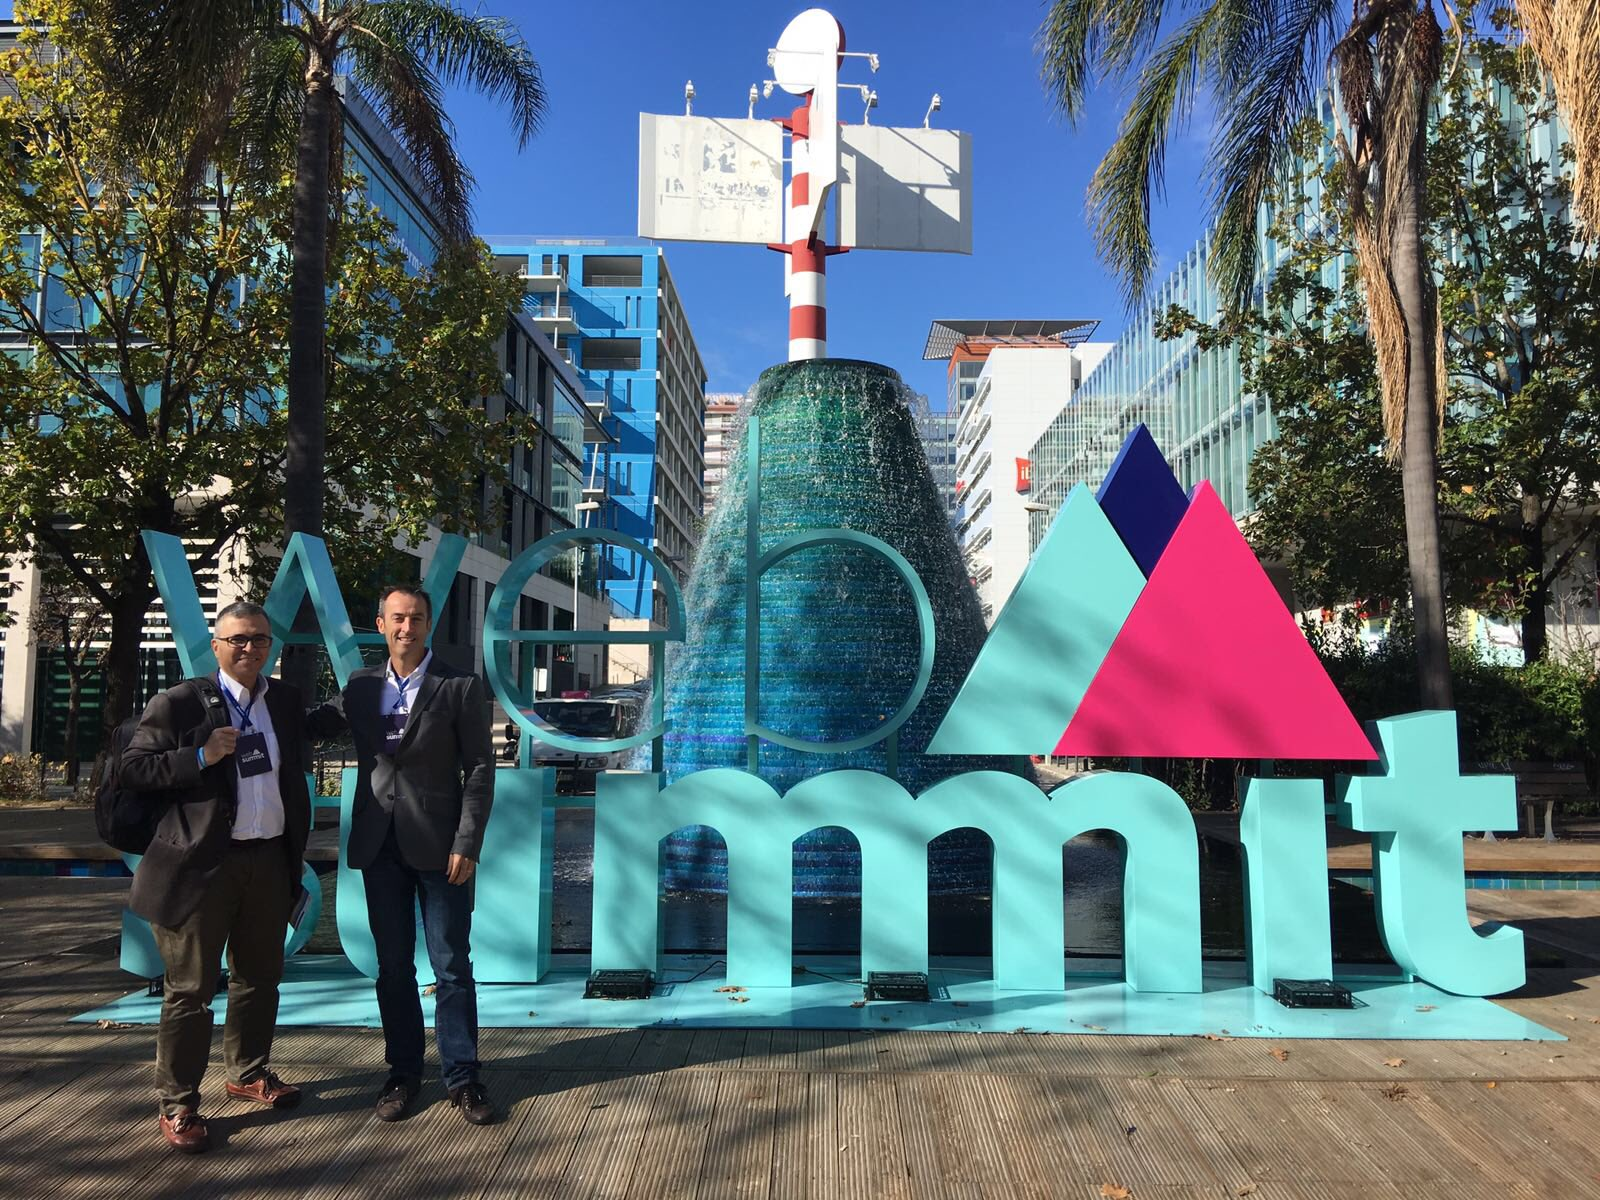 Our experience of the Web Summit in Lisbon